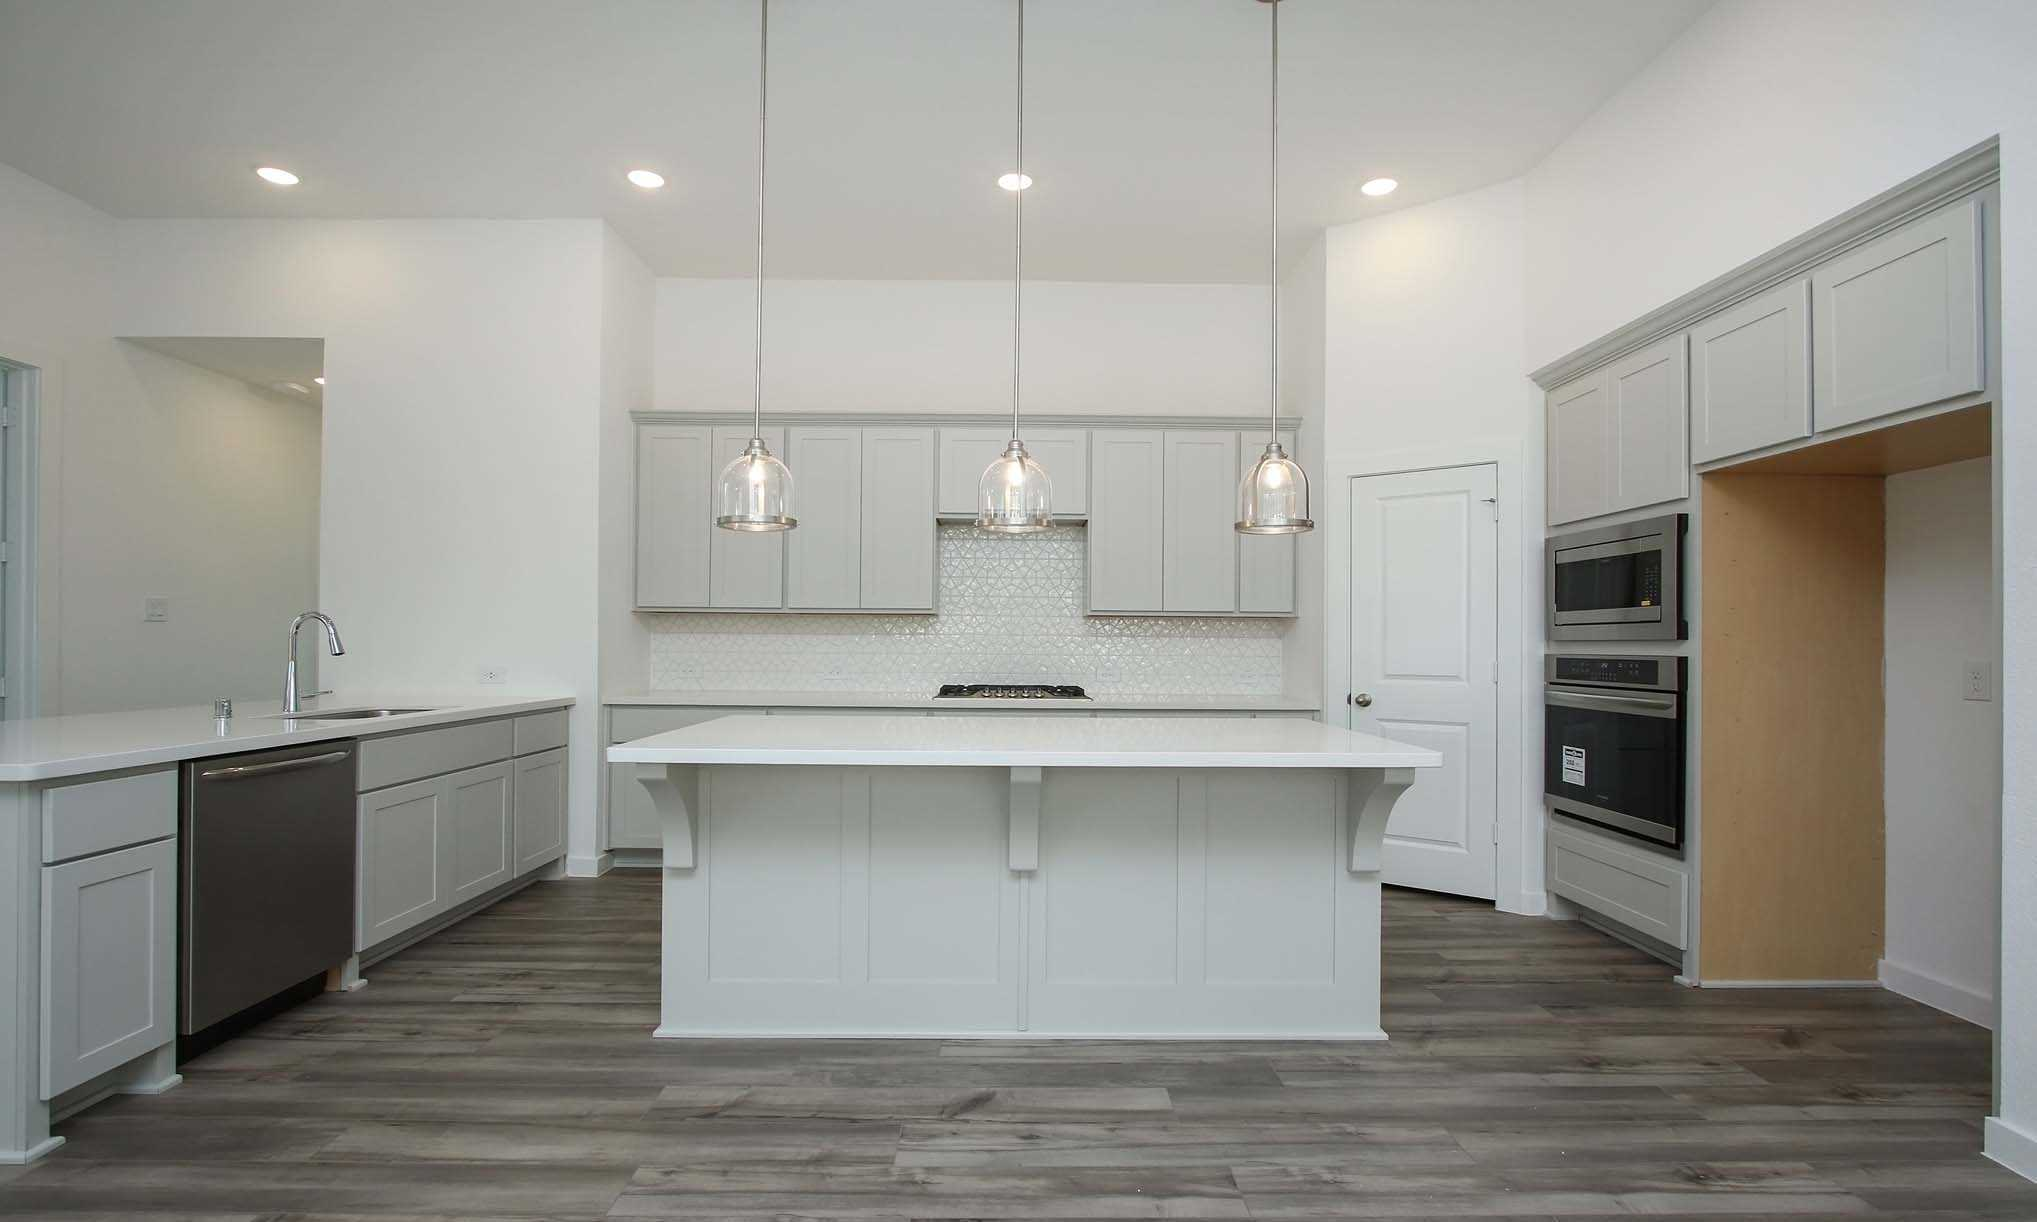 Kitchen featured in the Plan Oxford By Highland Homes in Houston, TX